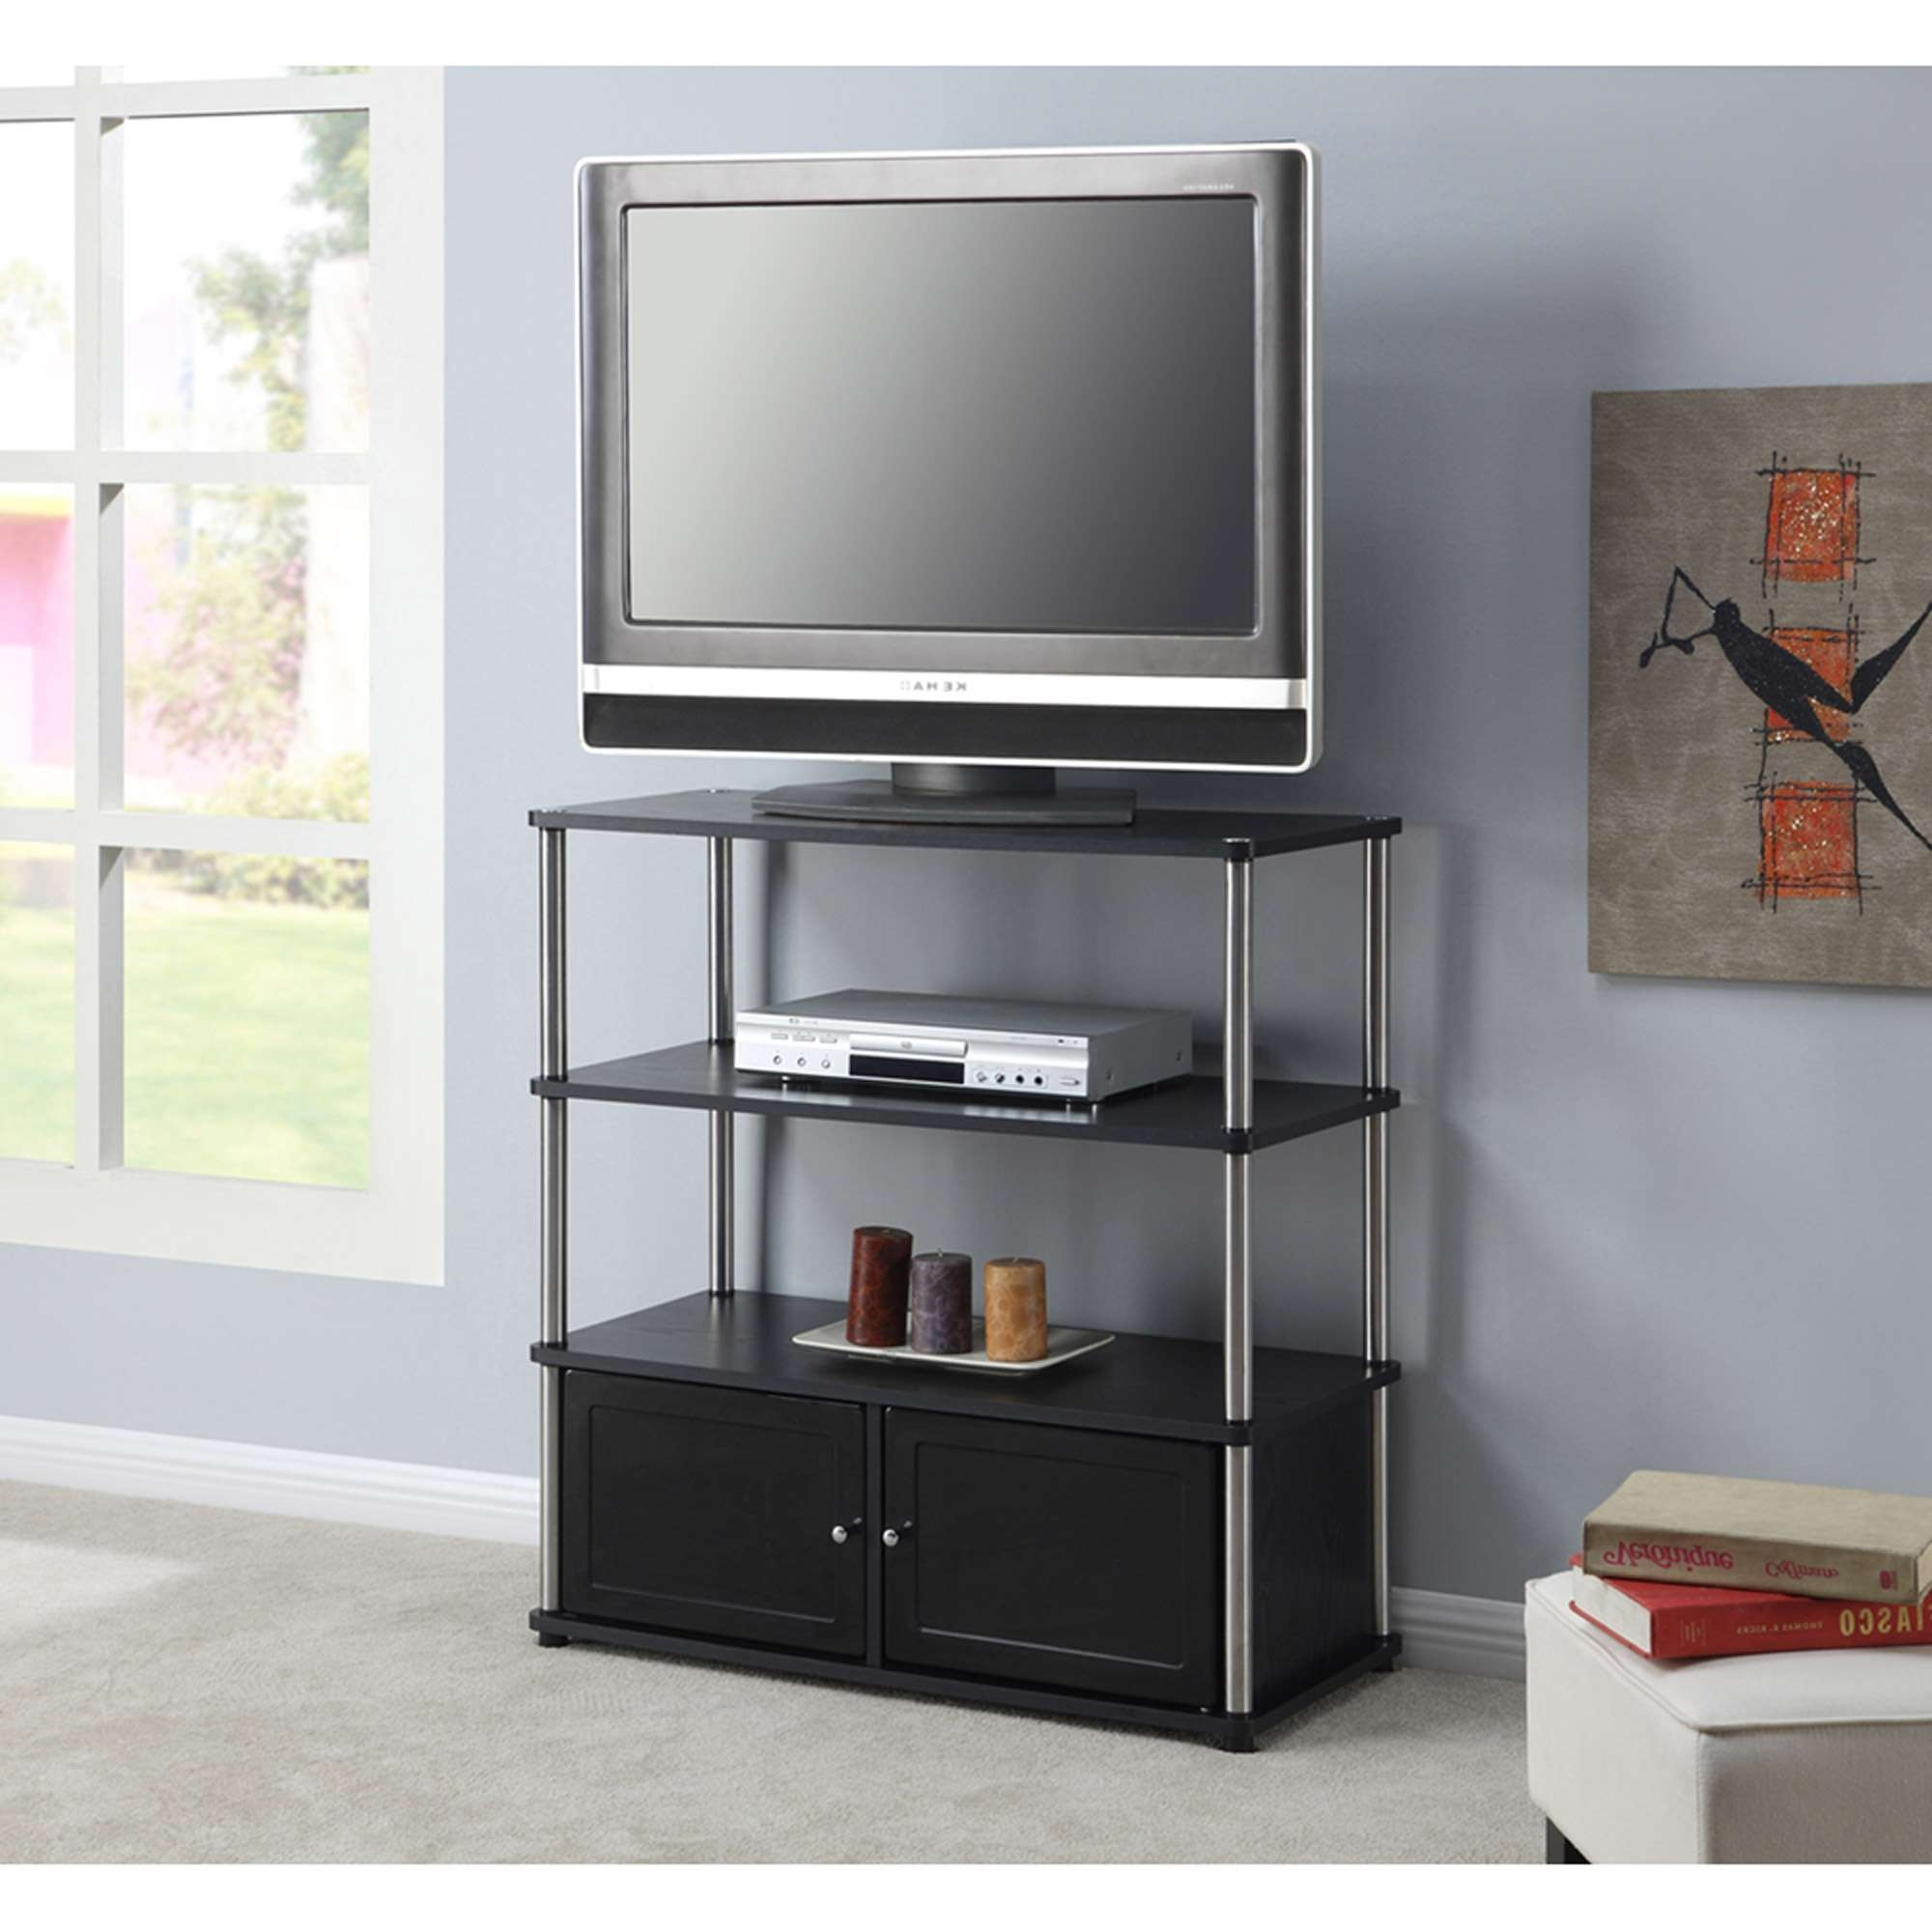 Tv Stands Inspiring Stand With Mount And Drawers Design Altra Throughout Tall Tv Stands For Flat Screen (View 4 of 15)